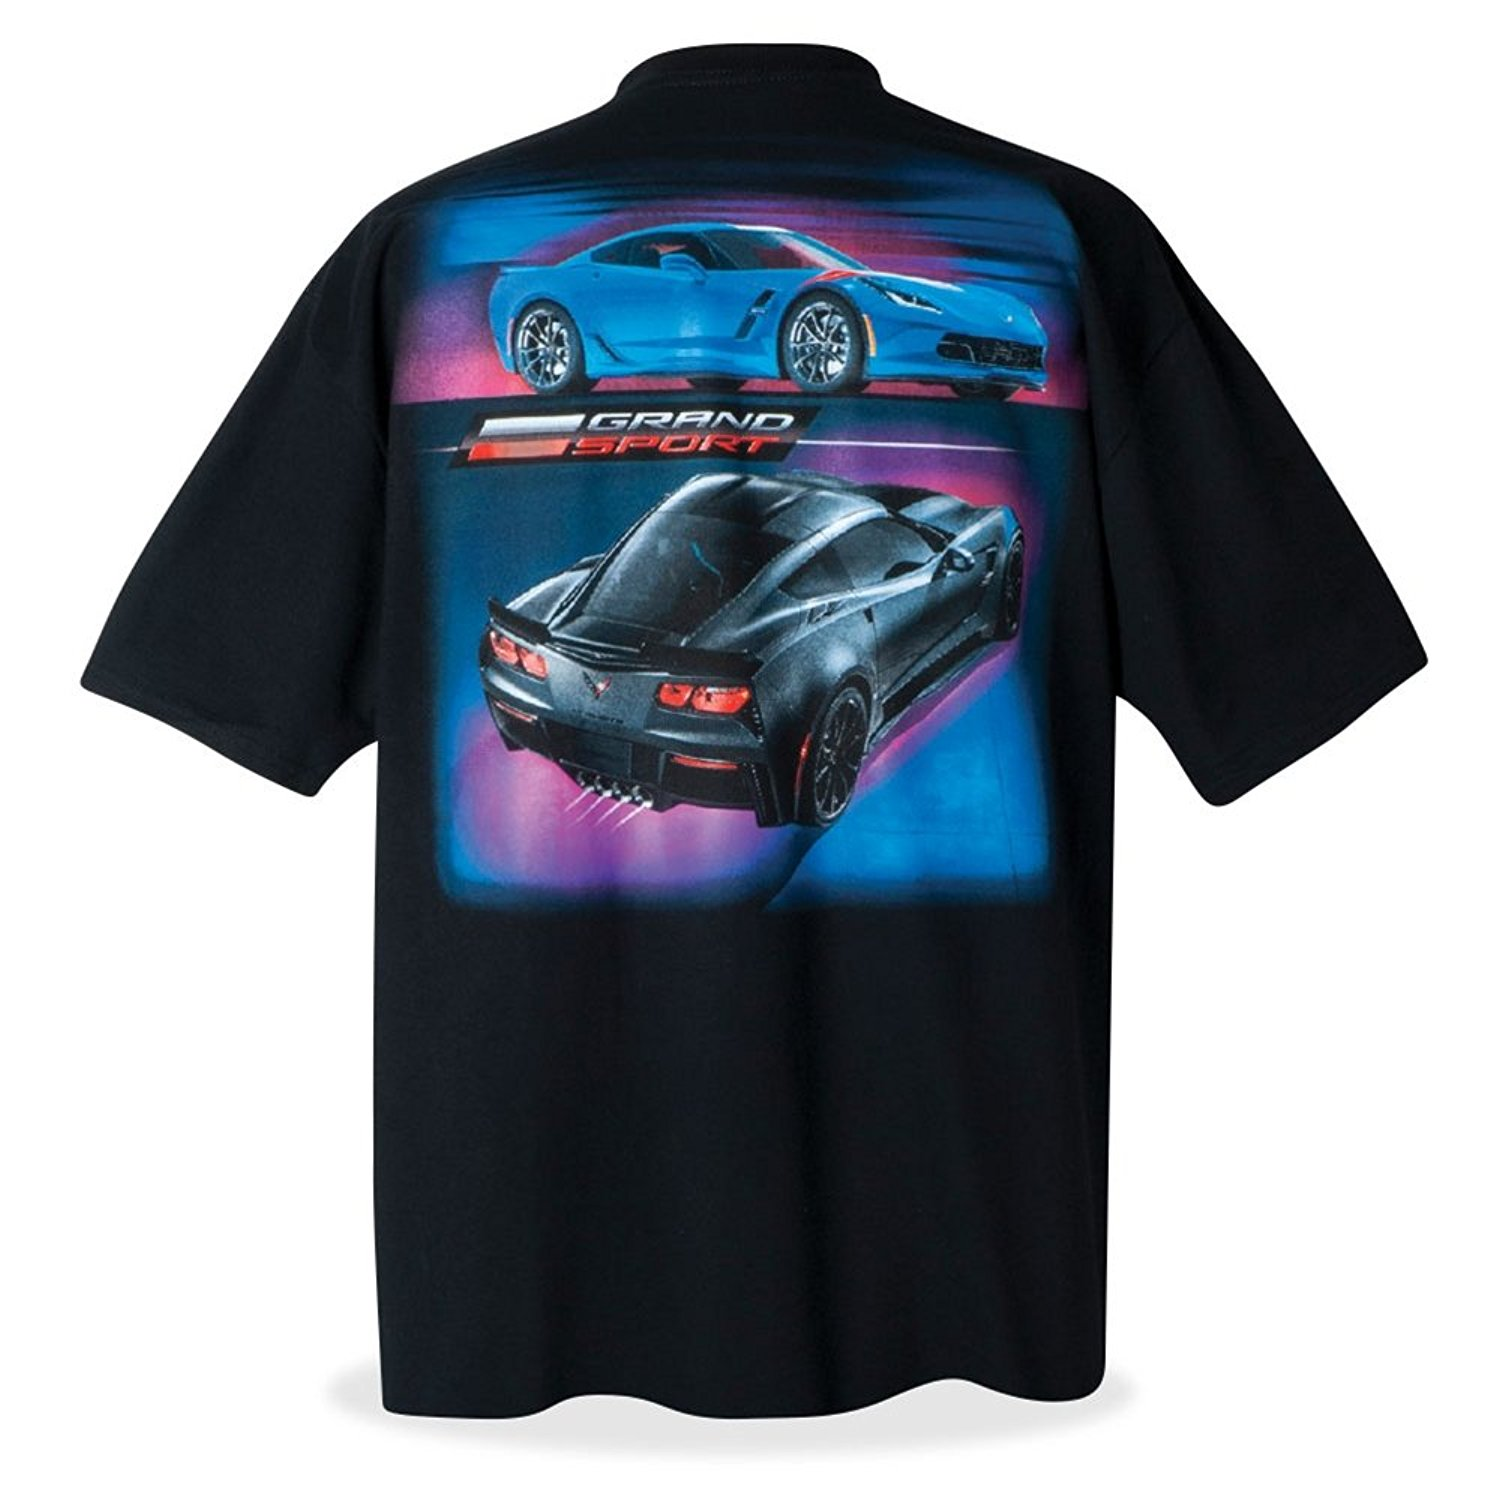 be03dacb8ac0e Get Quotations · West Coast Corvette   Camaro C7 Grand Sport Corvette  T-Shirt - Black